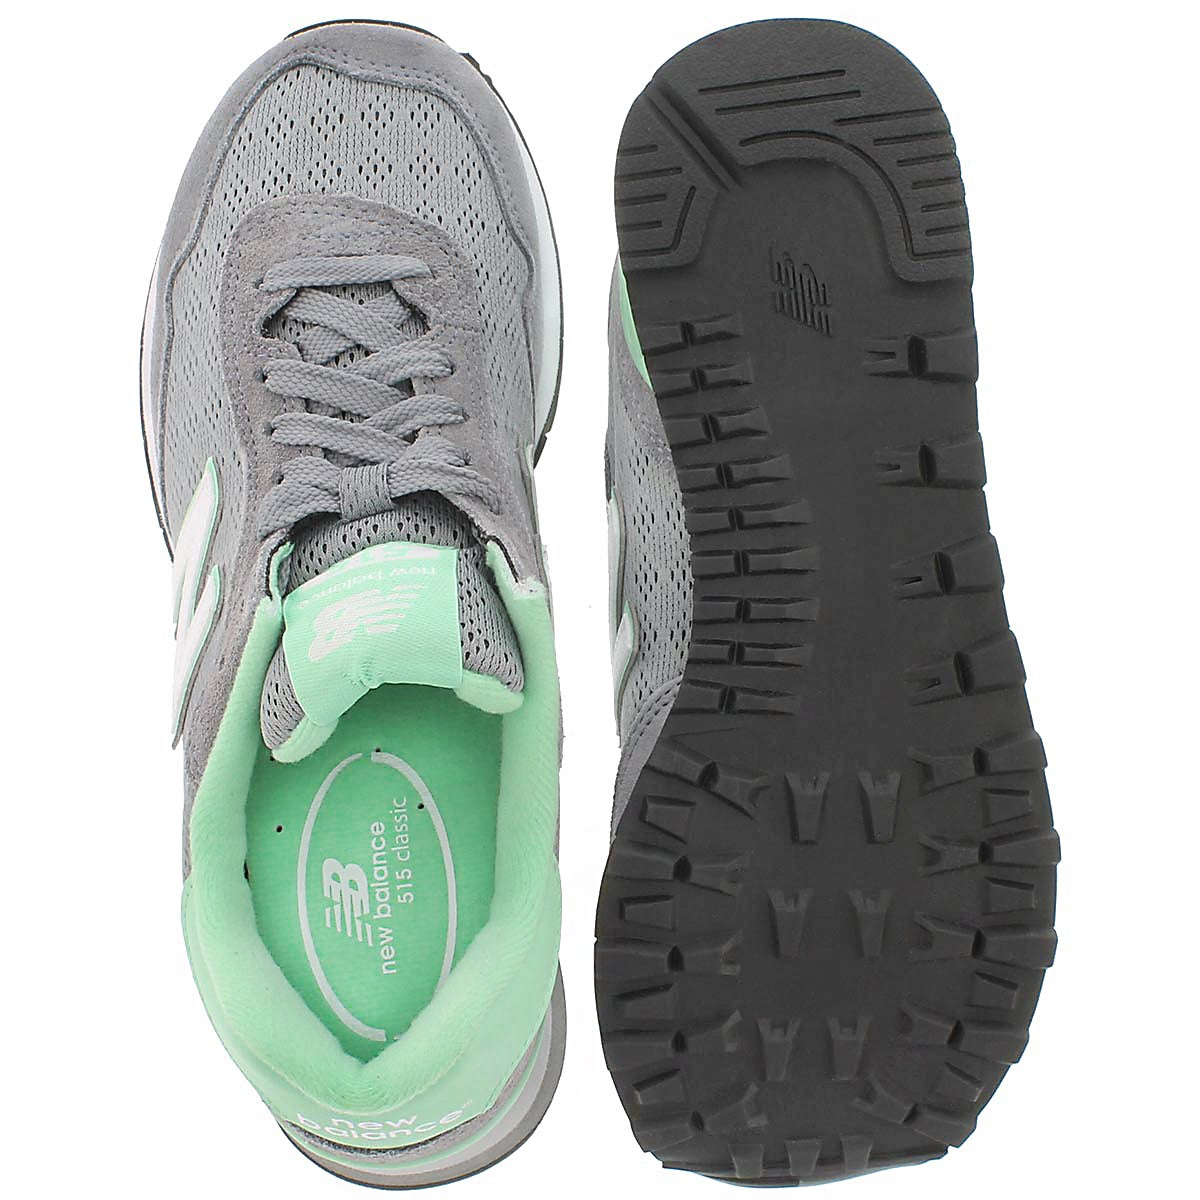 Lds 515 grey/green lace up sneaker